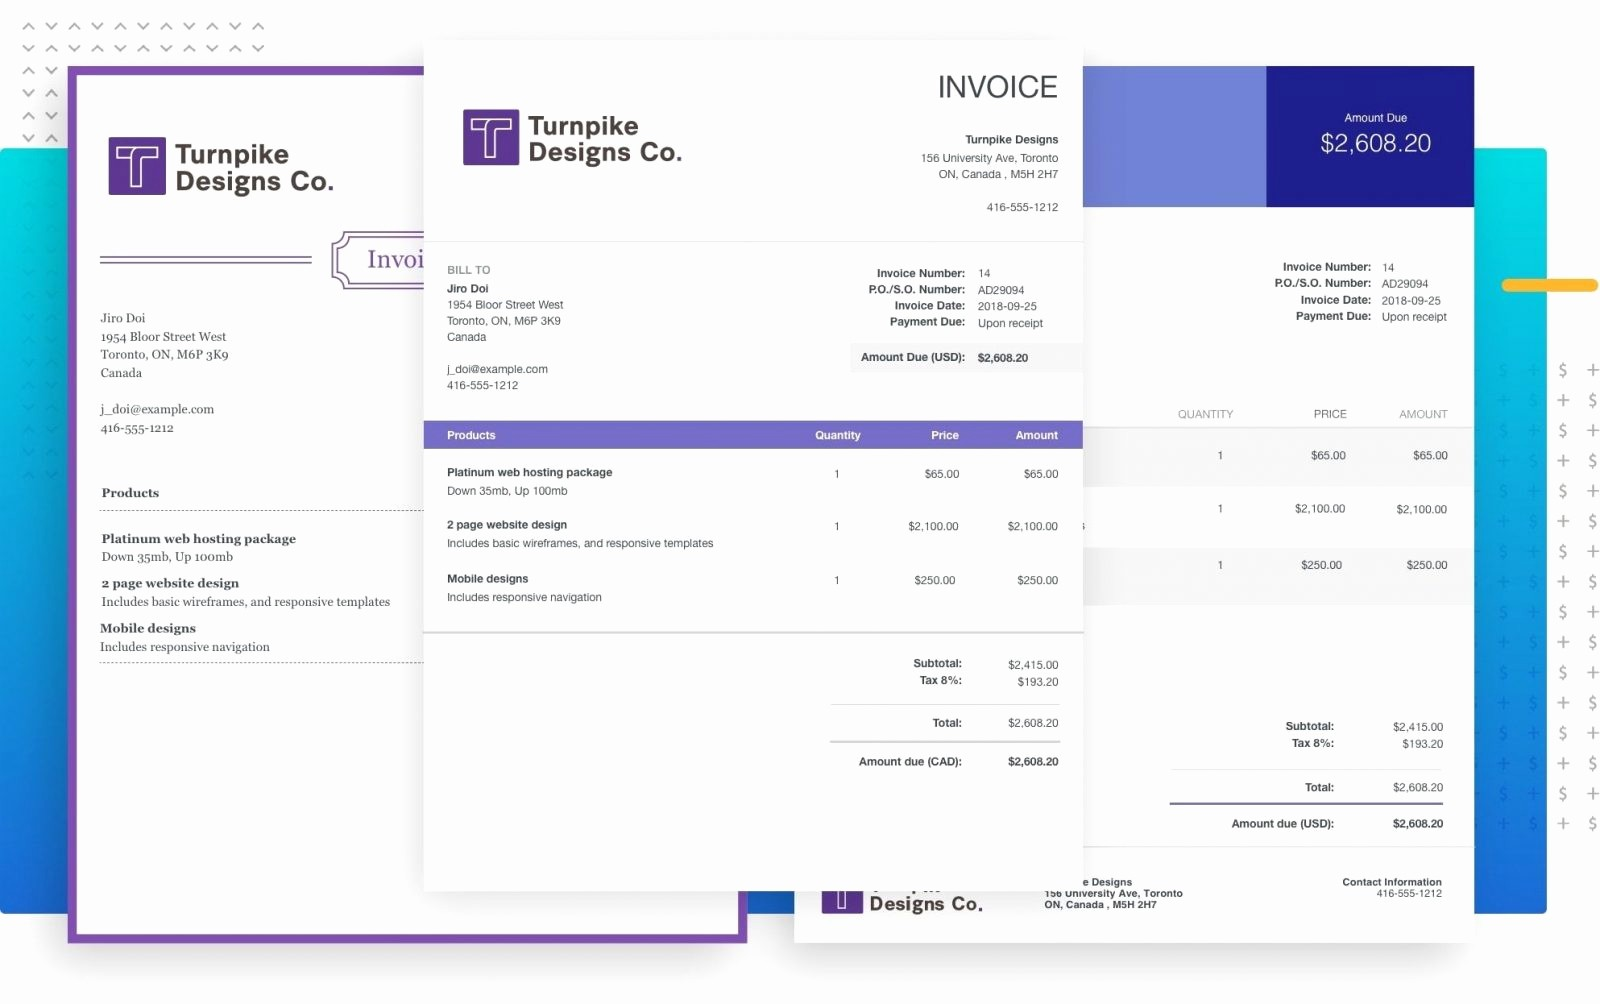 Excel Invoice Template with Logo Luxury Billing software Invoicing for Your Business Example